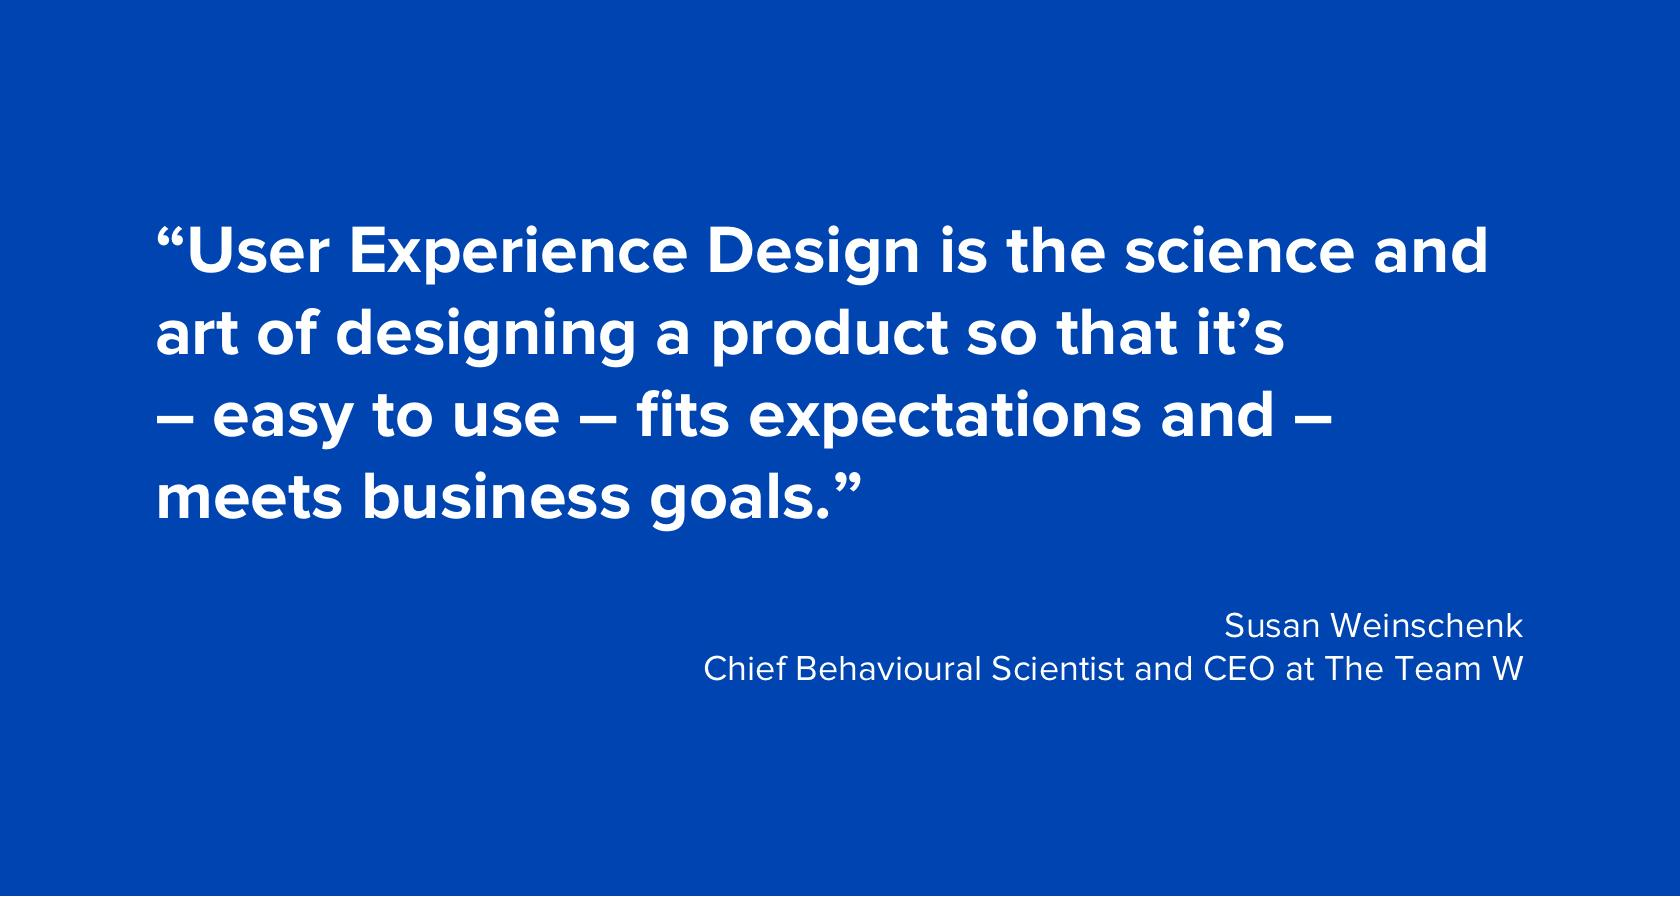 UX Design quote from Susan Weinschenk